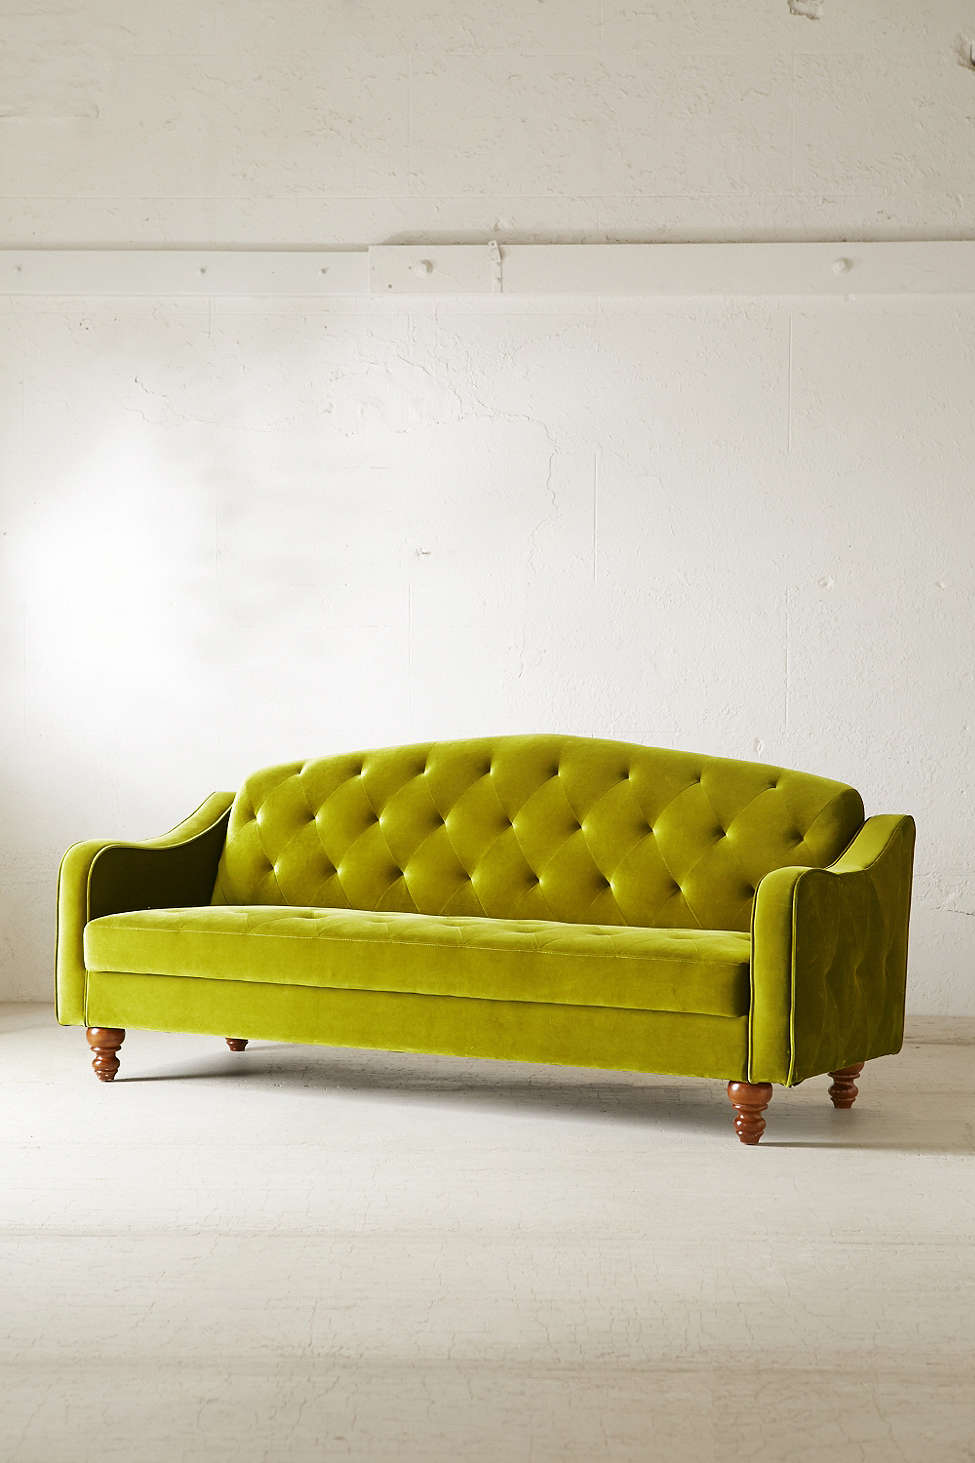 Brighten up your home 25 colorful sofas under 1000 for Ava chaise lounge